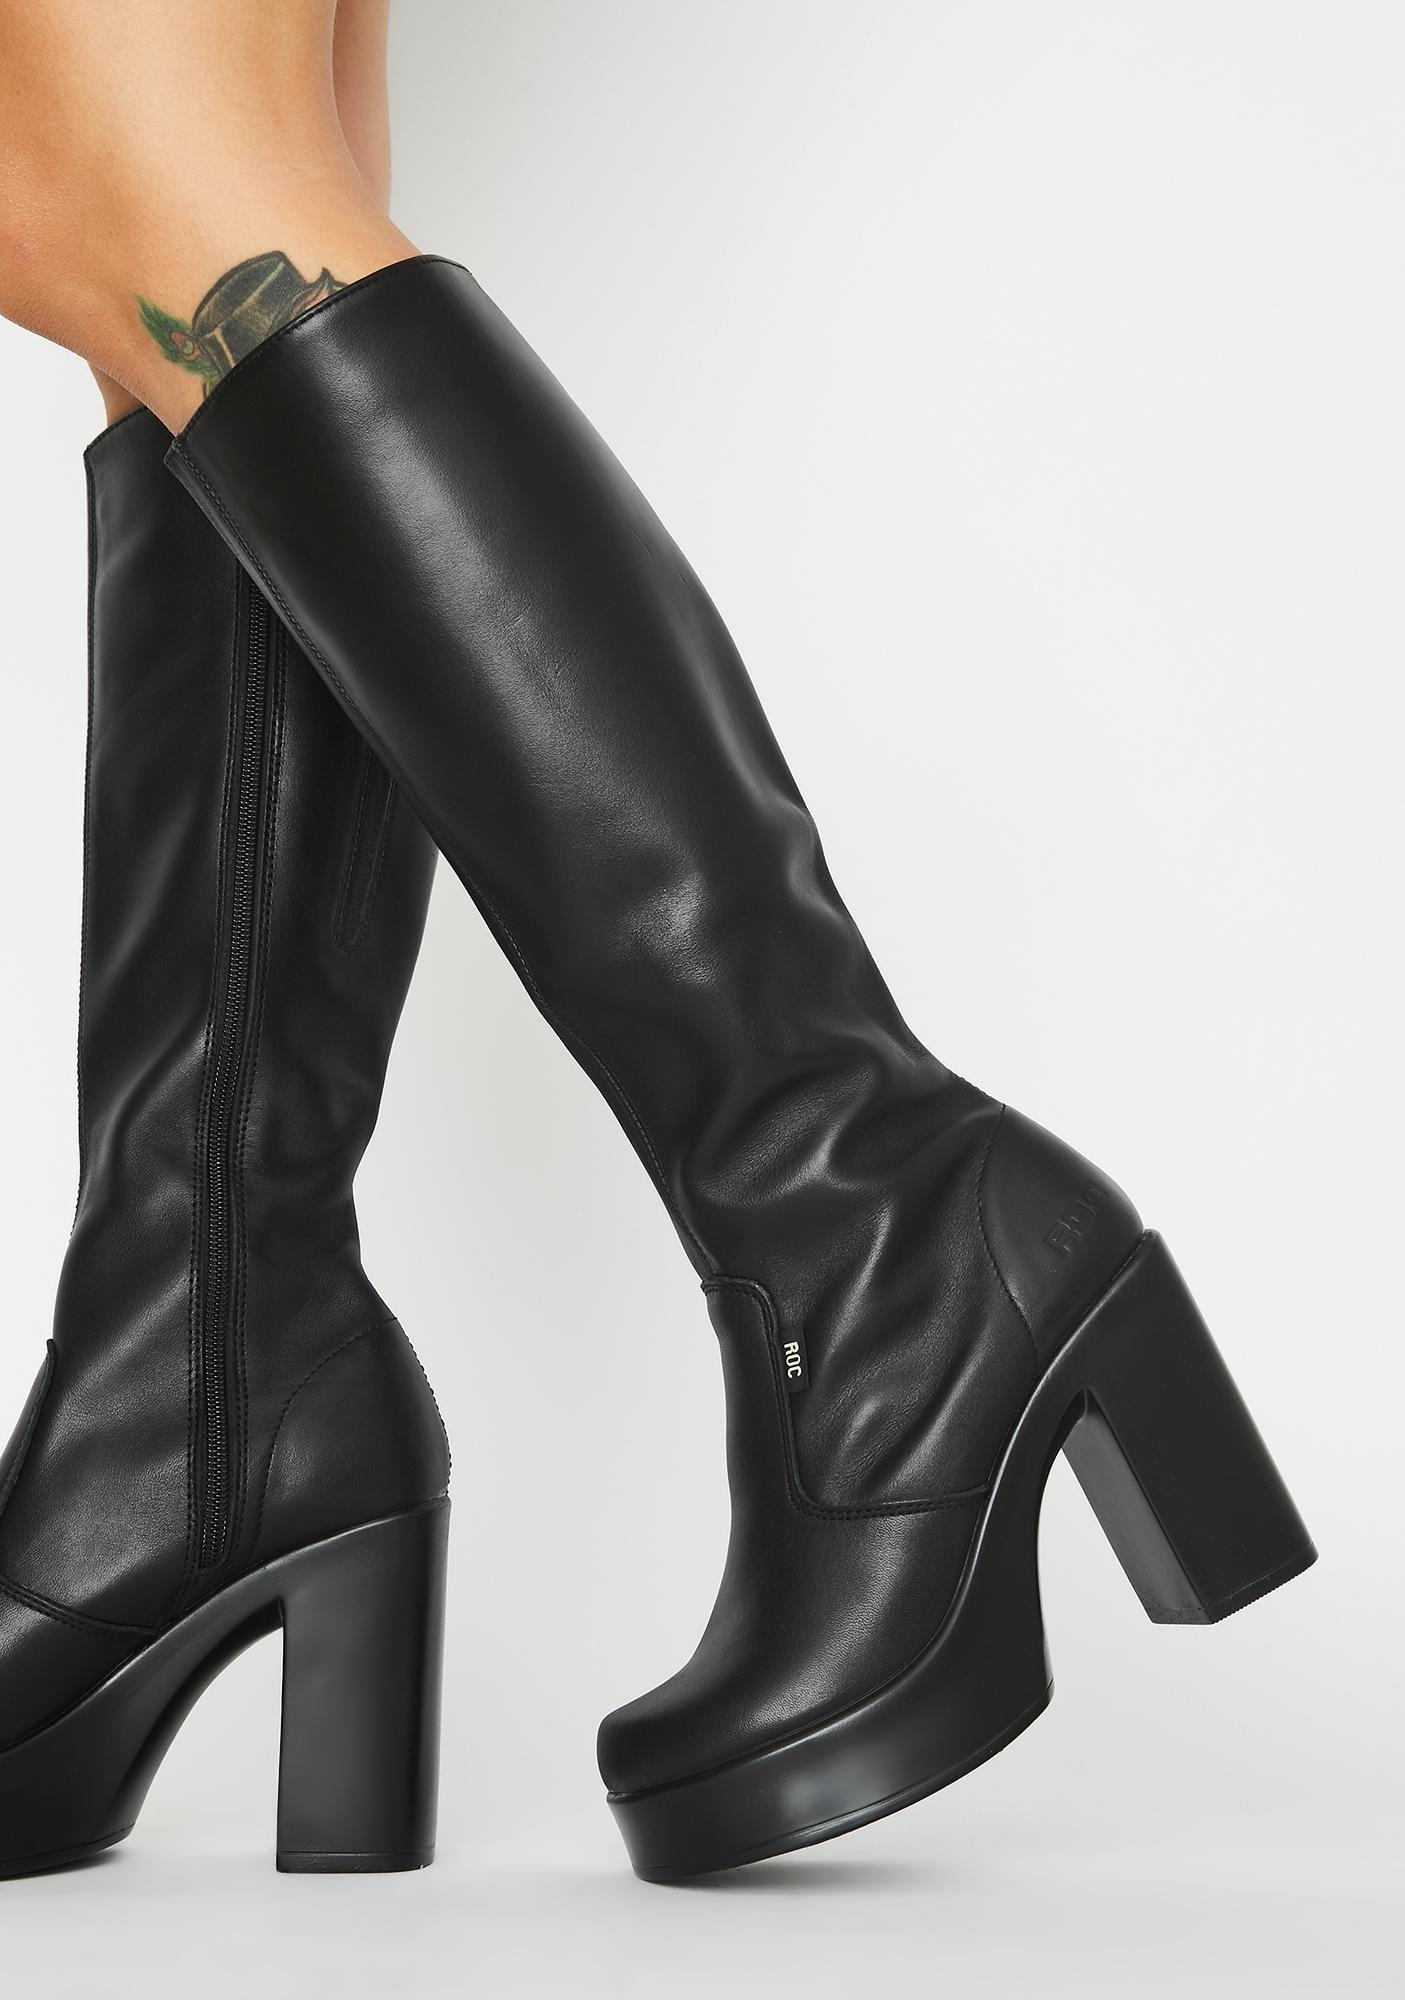 Nebraska Knee High Boots by Roc Boots Australia